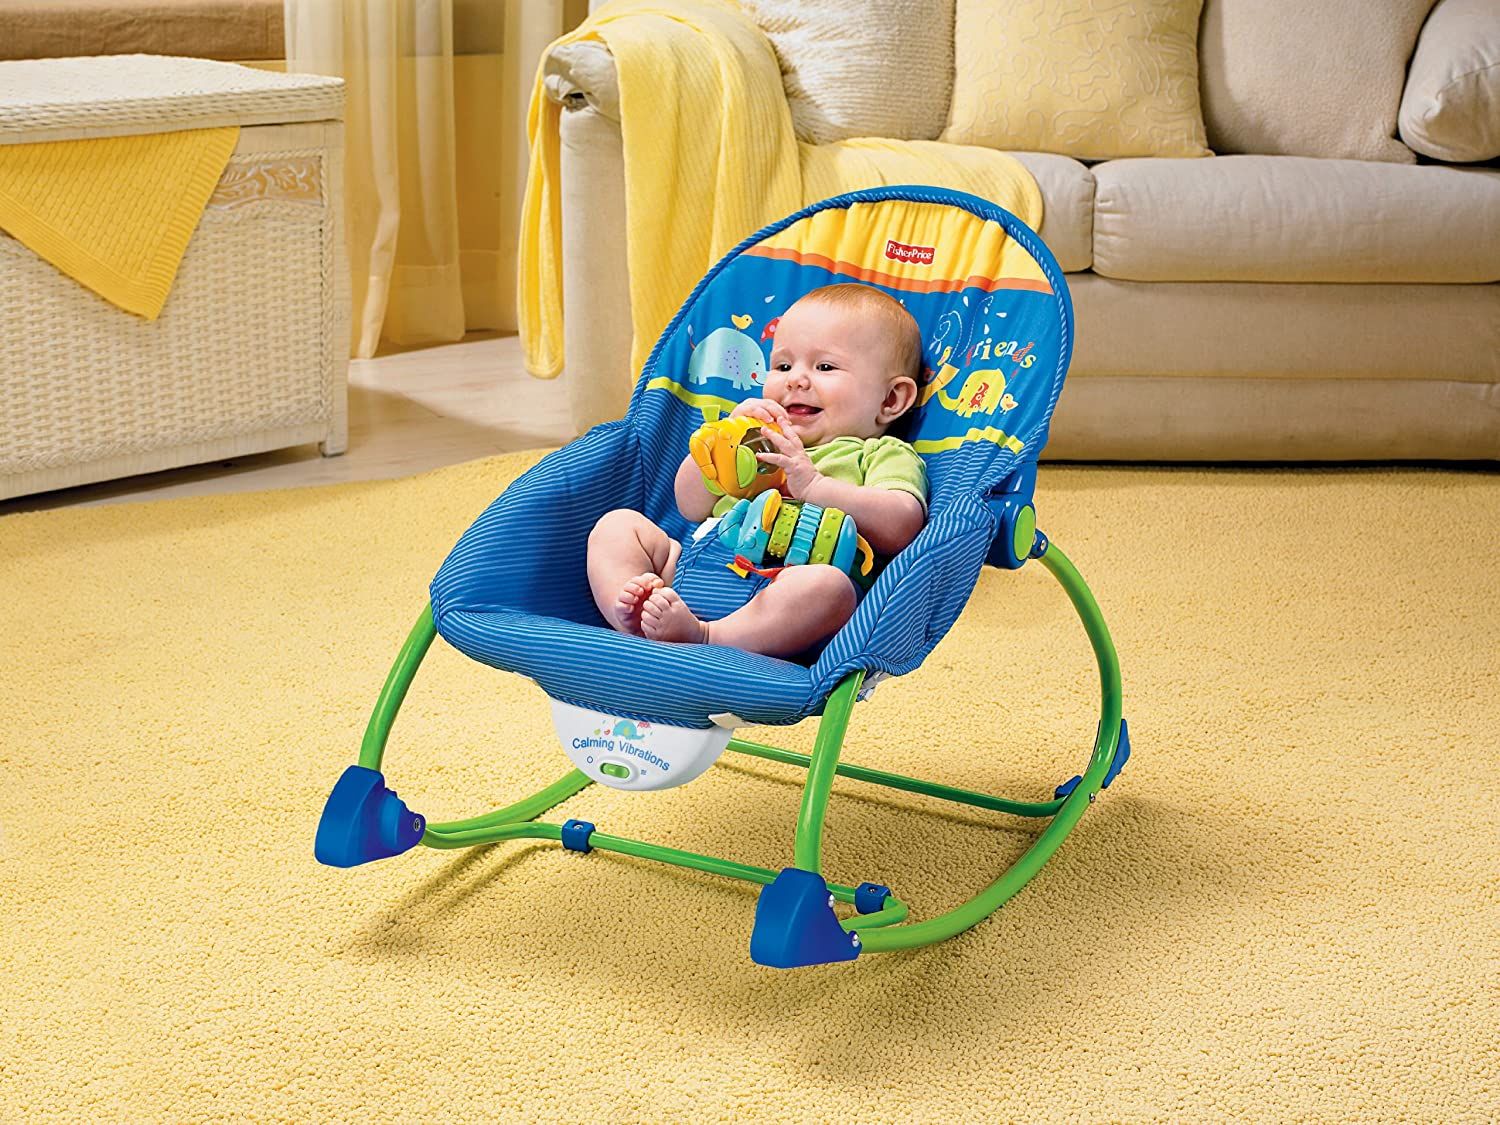 Amazon.com  Fisher-Price Infant-to-Toddler Rocker Blue/Green  Infant Bouncers And Rockers  Baby  sc 1 st  Amazon.com & Amazon.com : Fisher-Price Infant-to-Toddler Rocker Blue/Green ...